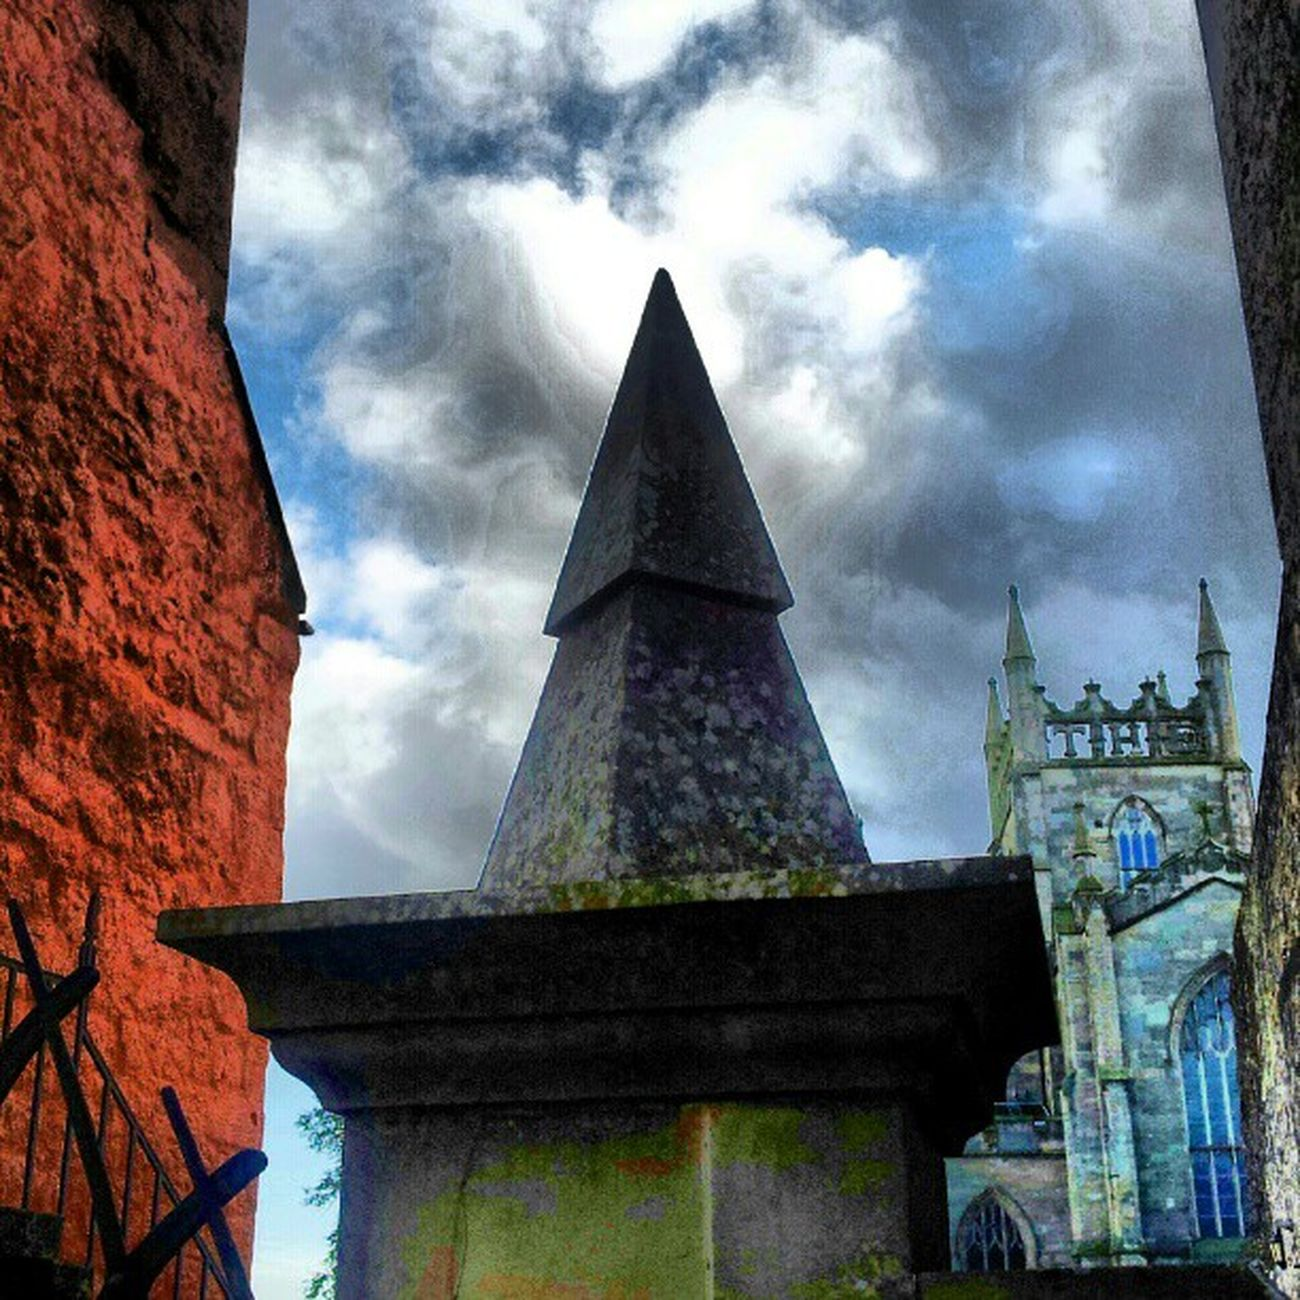 'Prism' Prism Dunfermline Scotland Architectureporn Structure plinth Abbey Cloudporn sky skyback skyporn sky_collection igscotland igtube Igers igdaily Tagstagram most_deserving thebestshooter iphonesia photooftheday insta_shutter Instagood instamood instagrammers picoftheday insta_pick webstagram